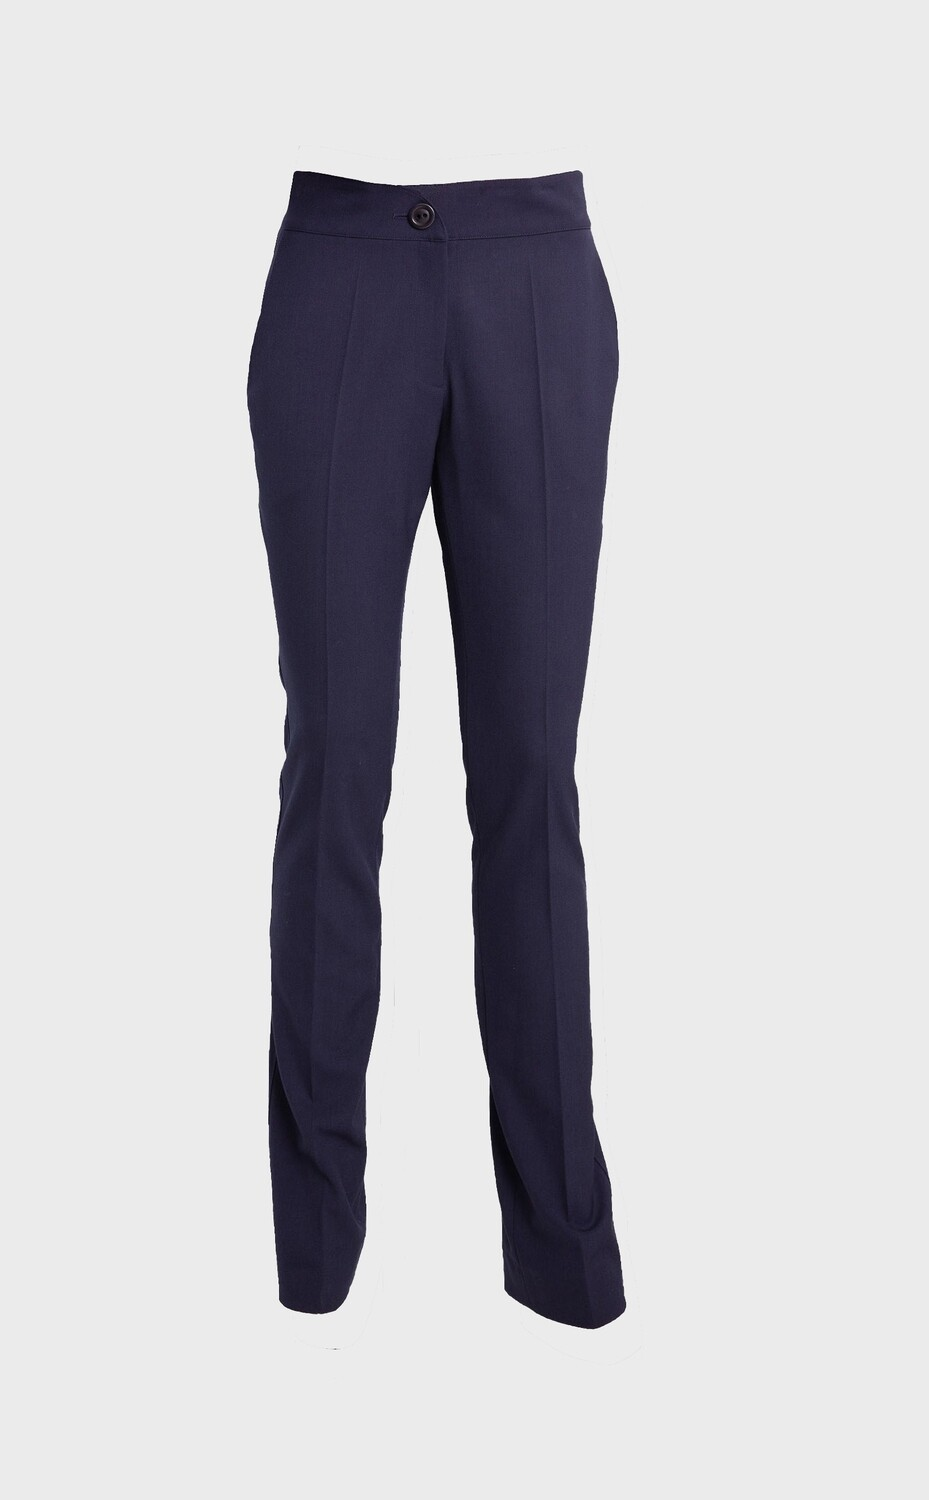 HIGH-WAISTED CIGARETTE TROUSERS IN NAVY